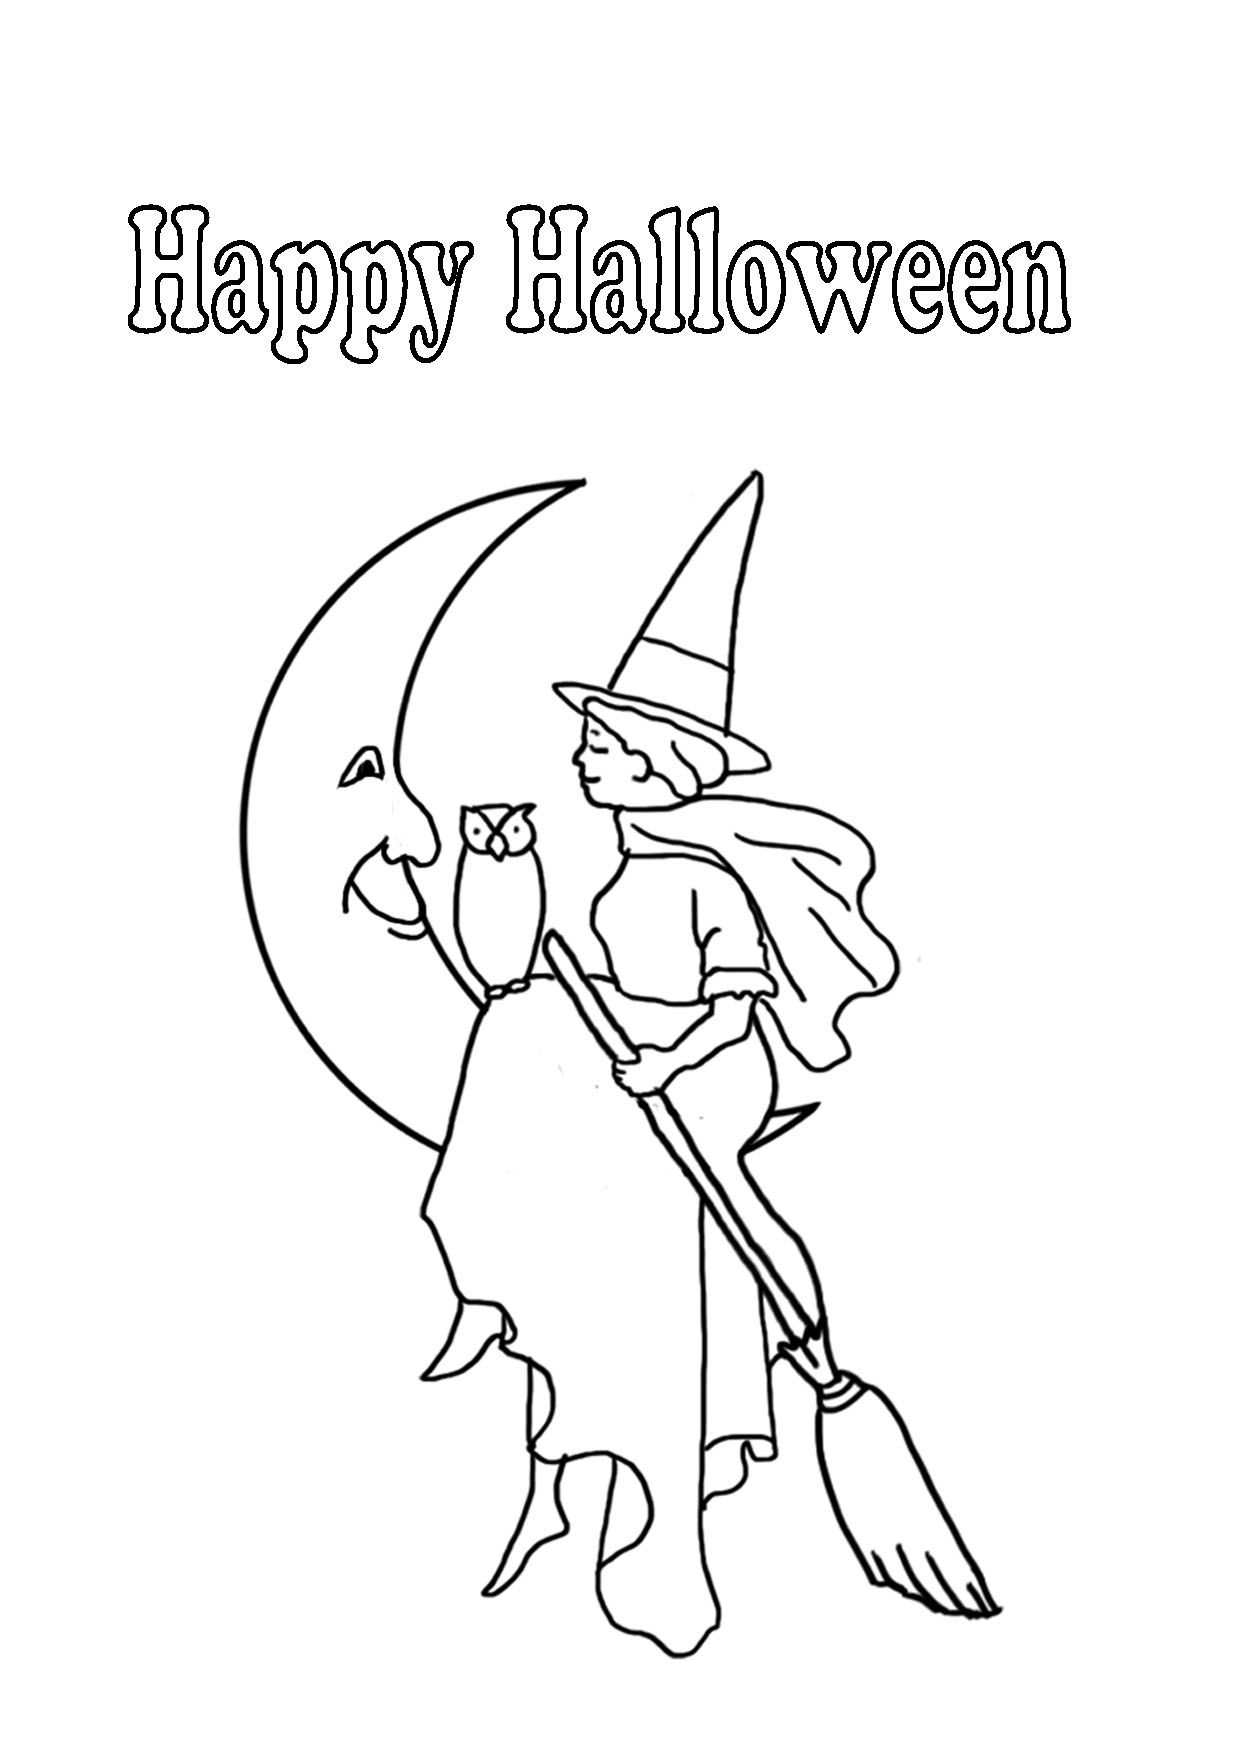 Halloween witch visiting the man in the moon